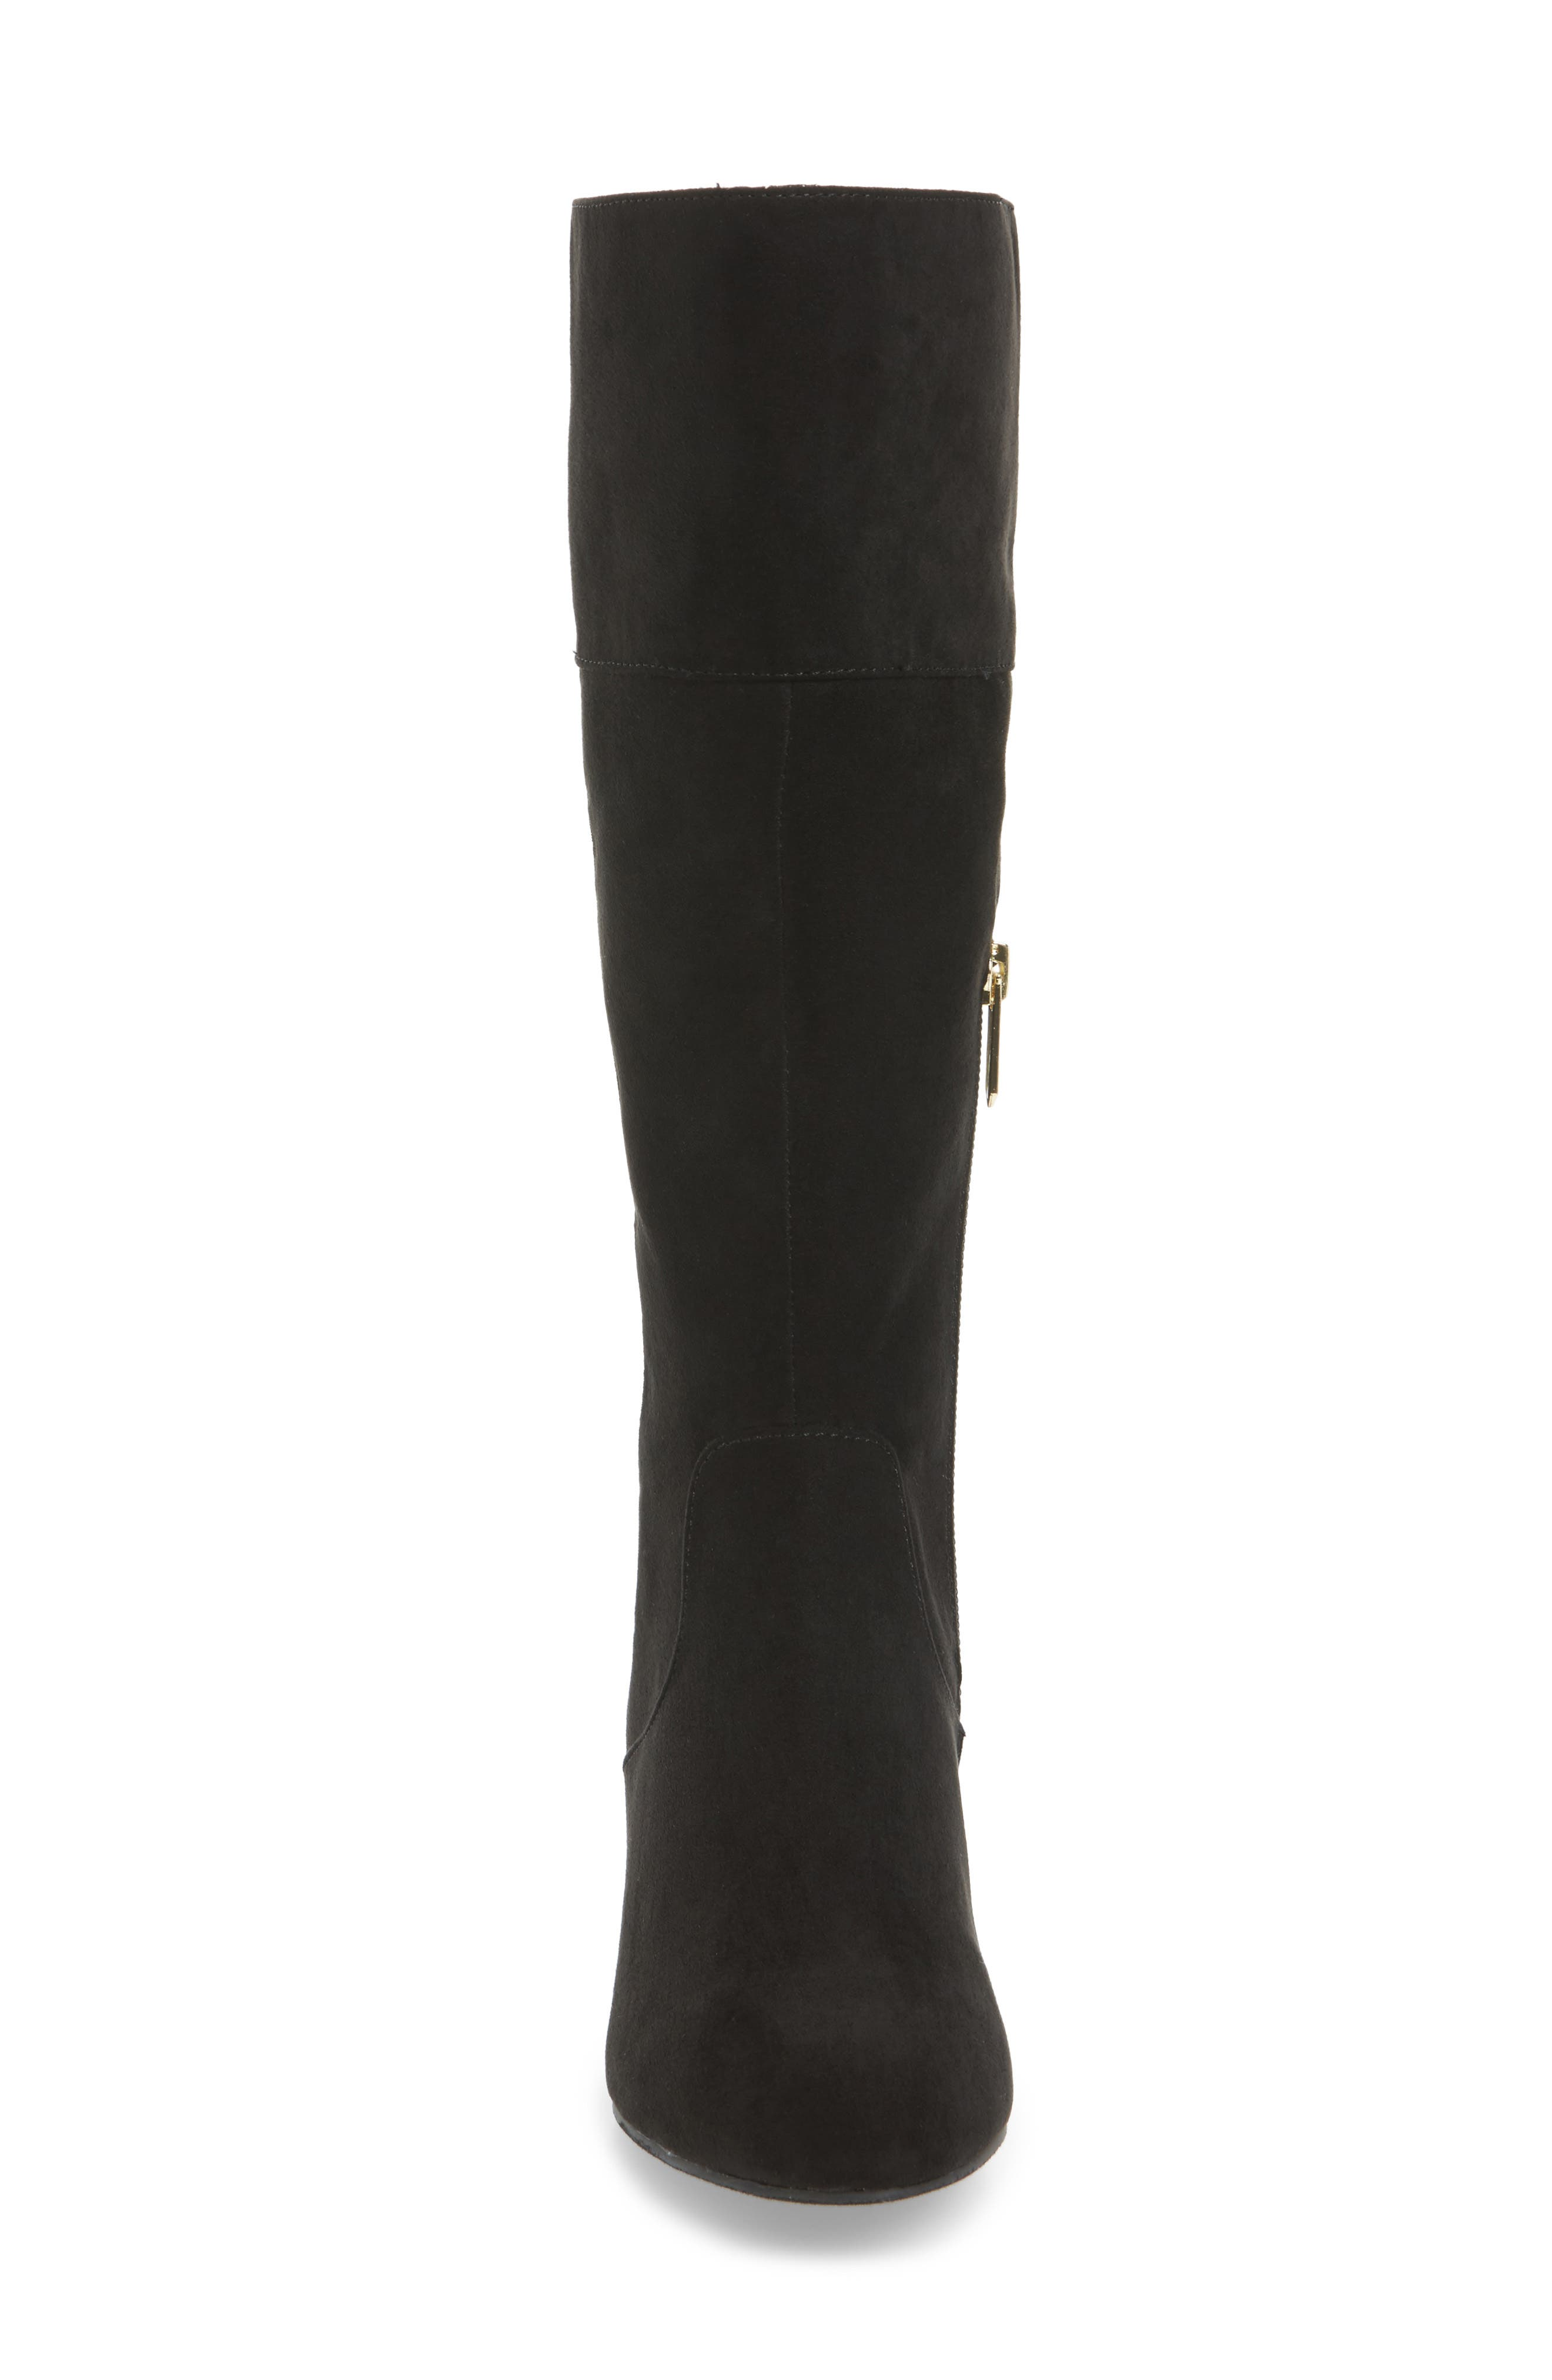 Tate Sydney Tall Boot,                             Alternate thumbnail 4, color,                             001